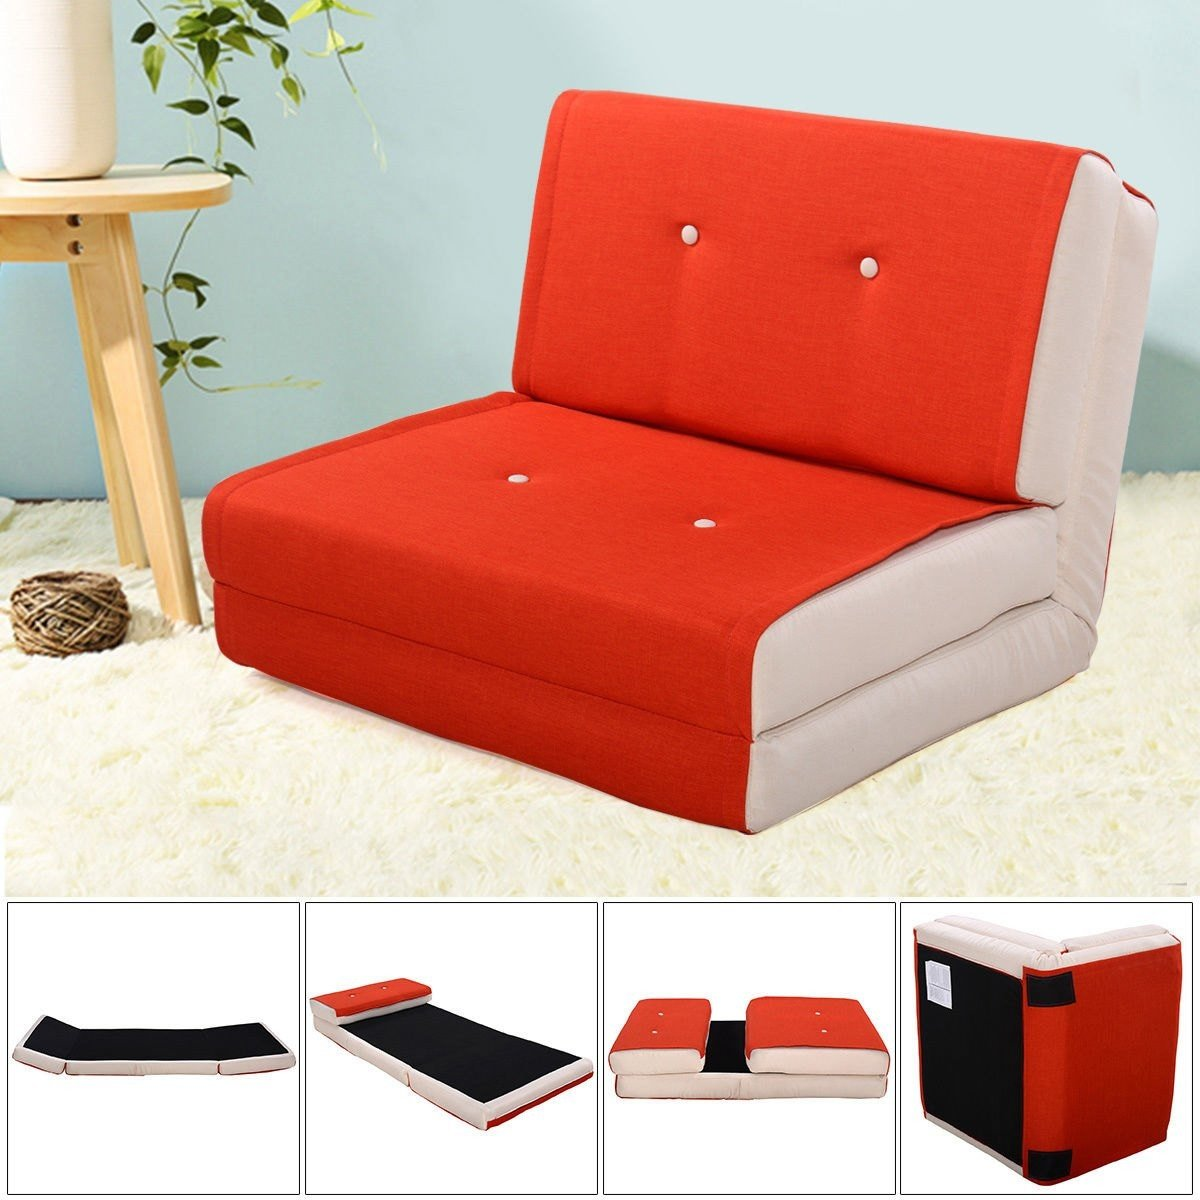 Fold Down Chair Flip Out Lounger Convertible Sleeper Bed Couch Game Dorm Orange